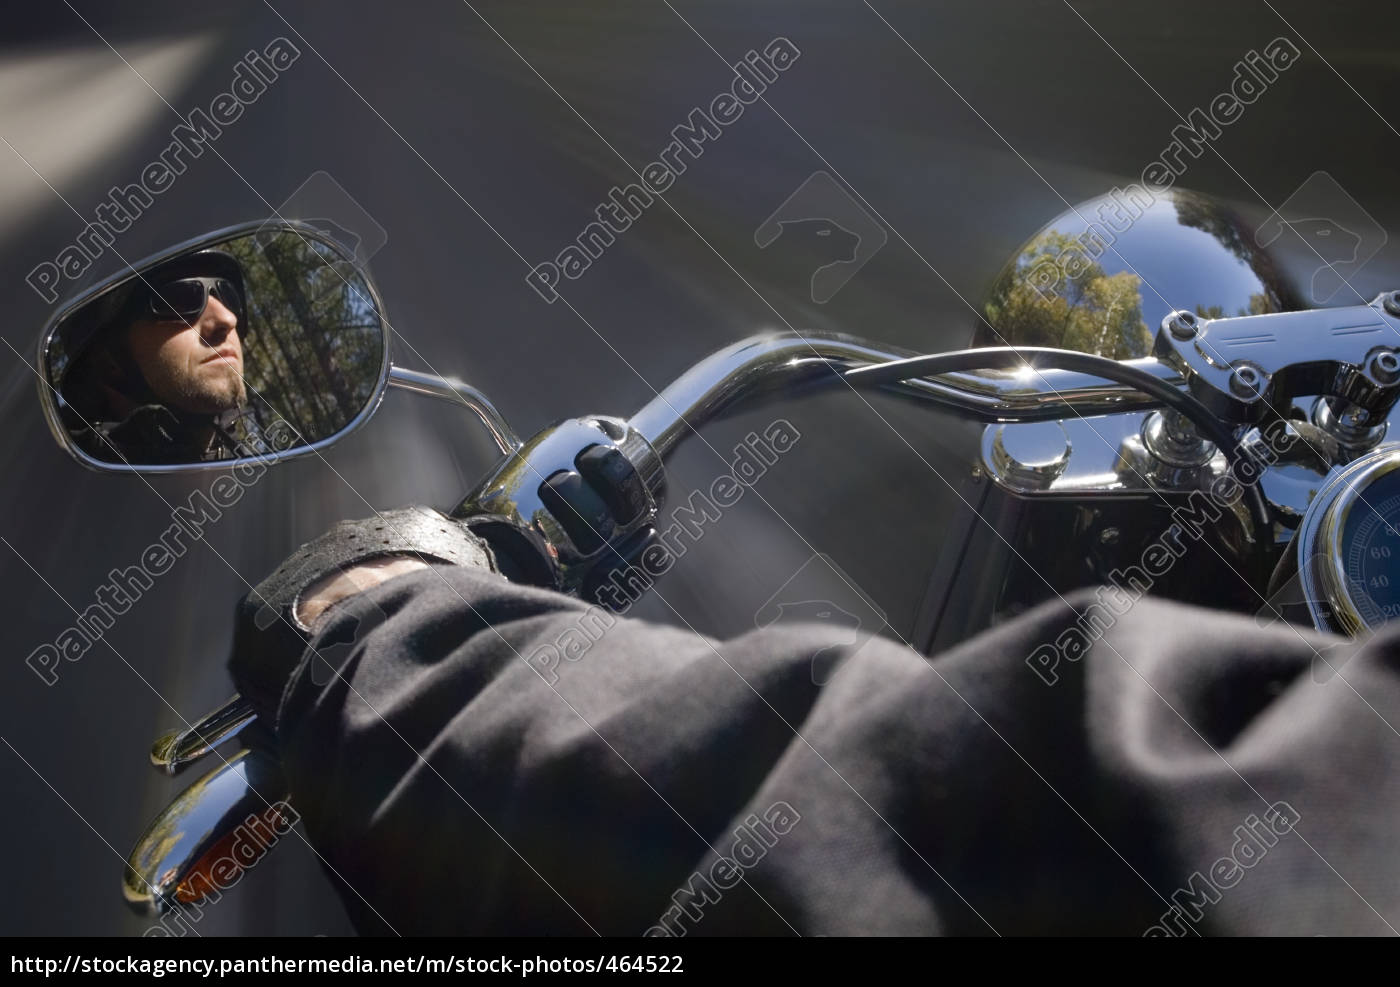 motorcycle, 10 - 464522